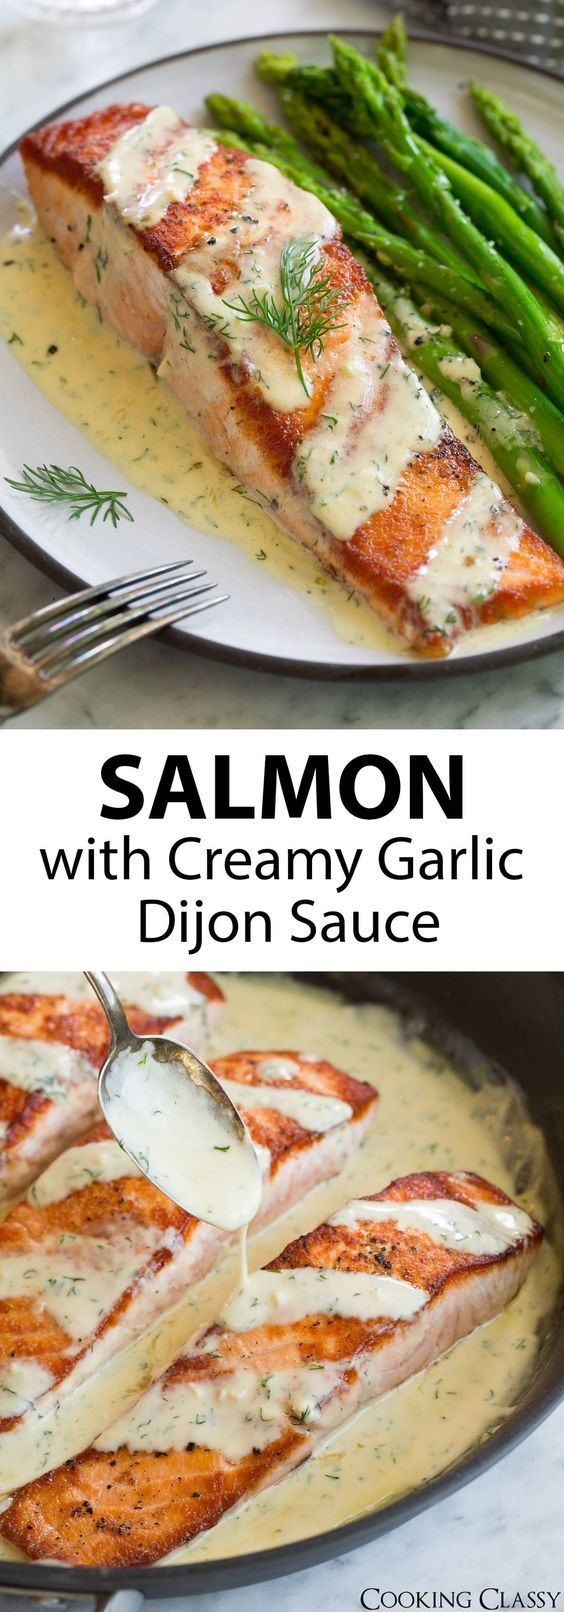 Salmon (with Creamy Garlic Dijon Sauce) - Cooking Classy